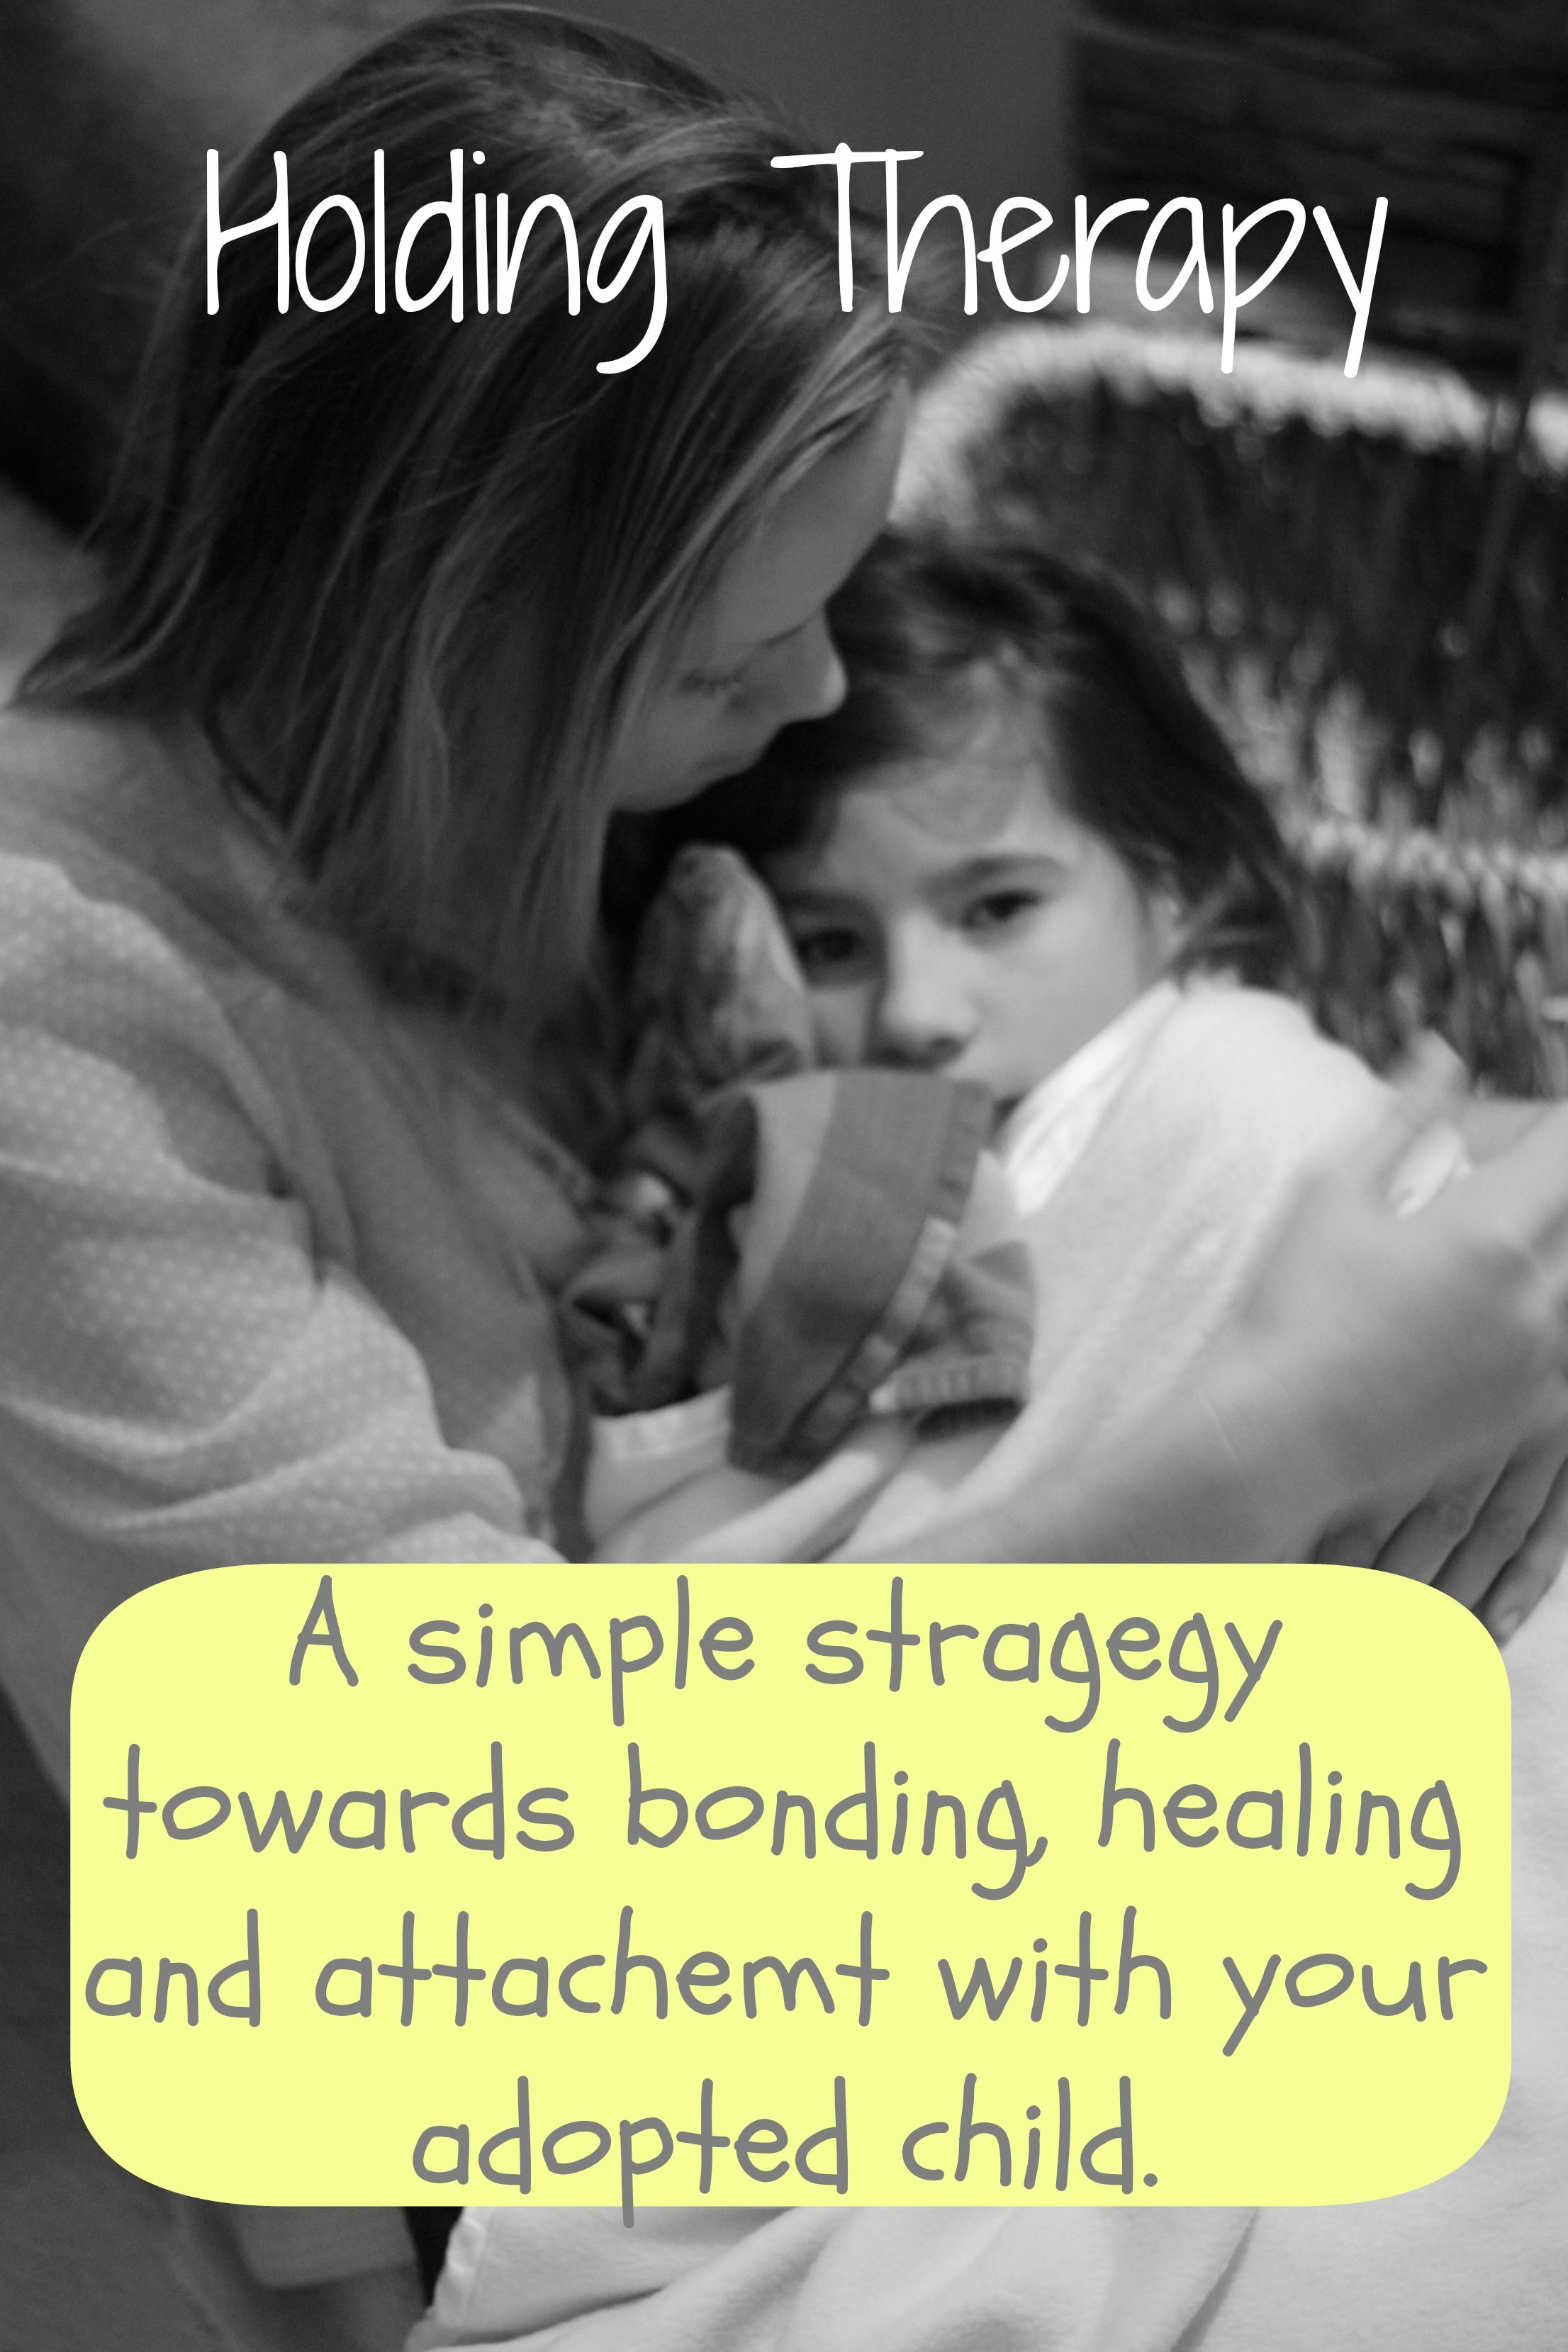 One the most powerful parenting strategies we have used